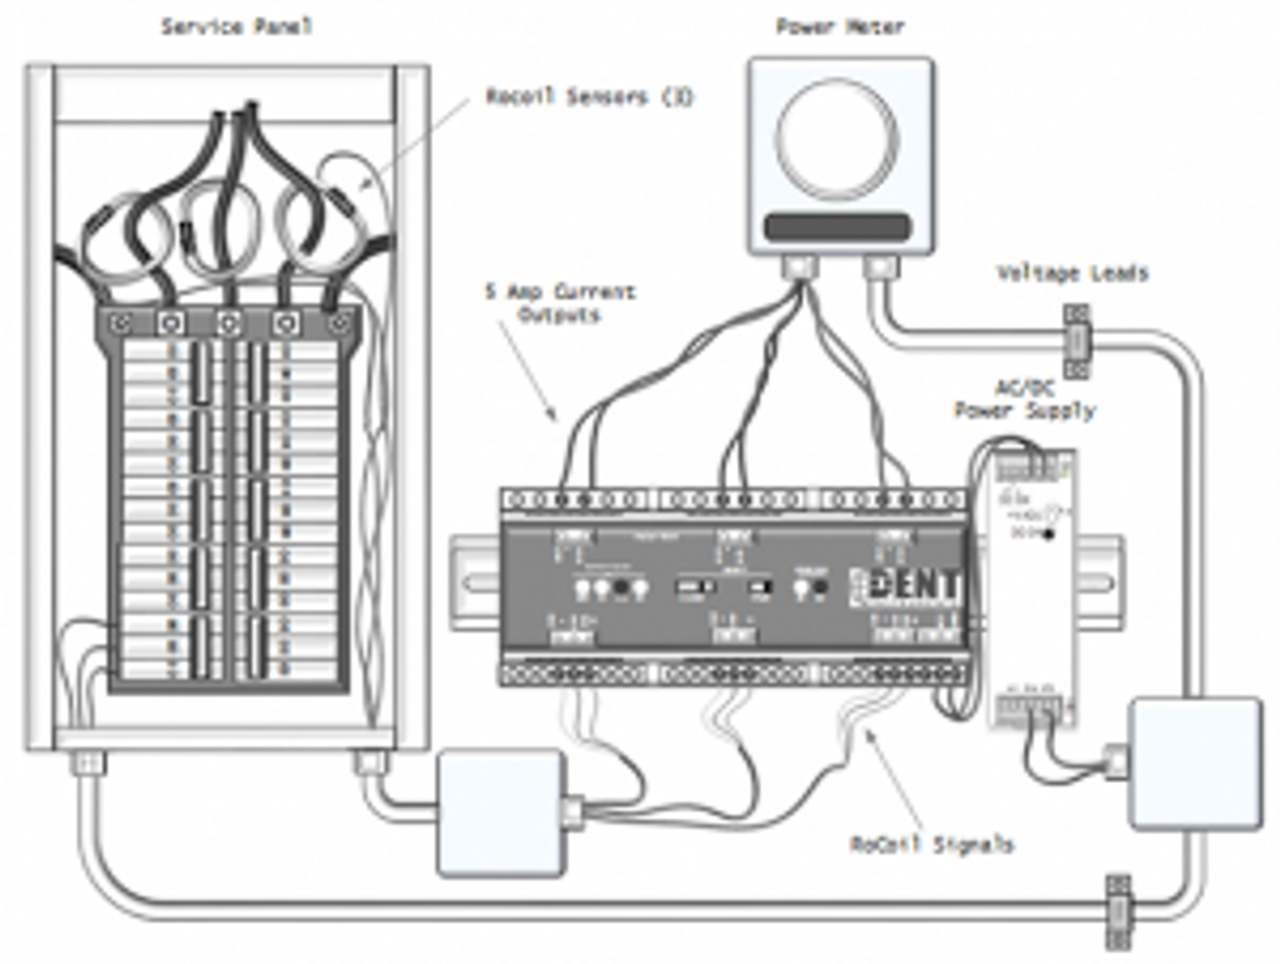 Dent RoCoil TCA-5 switchboard electrical drawing.